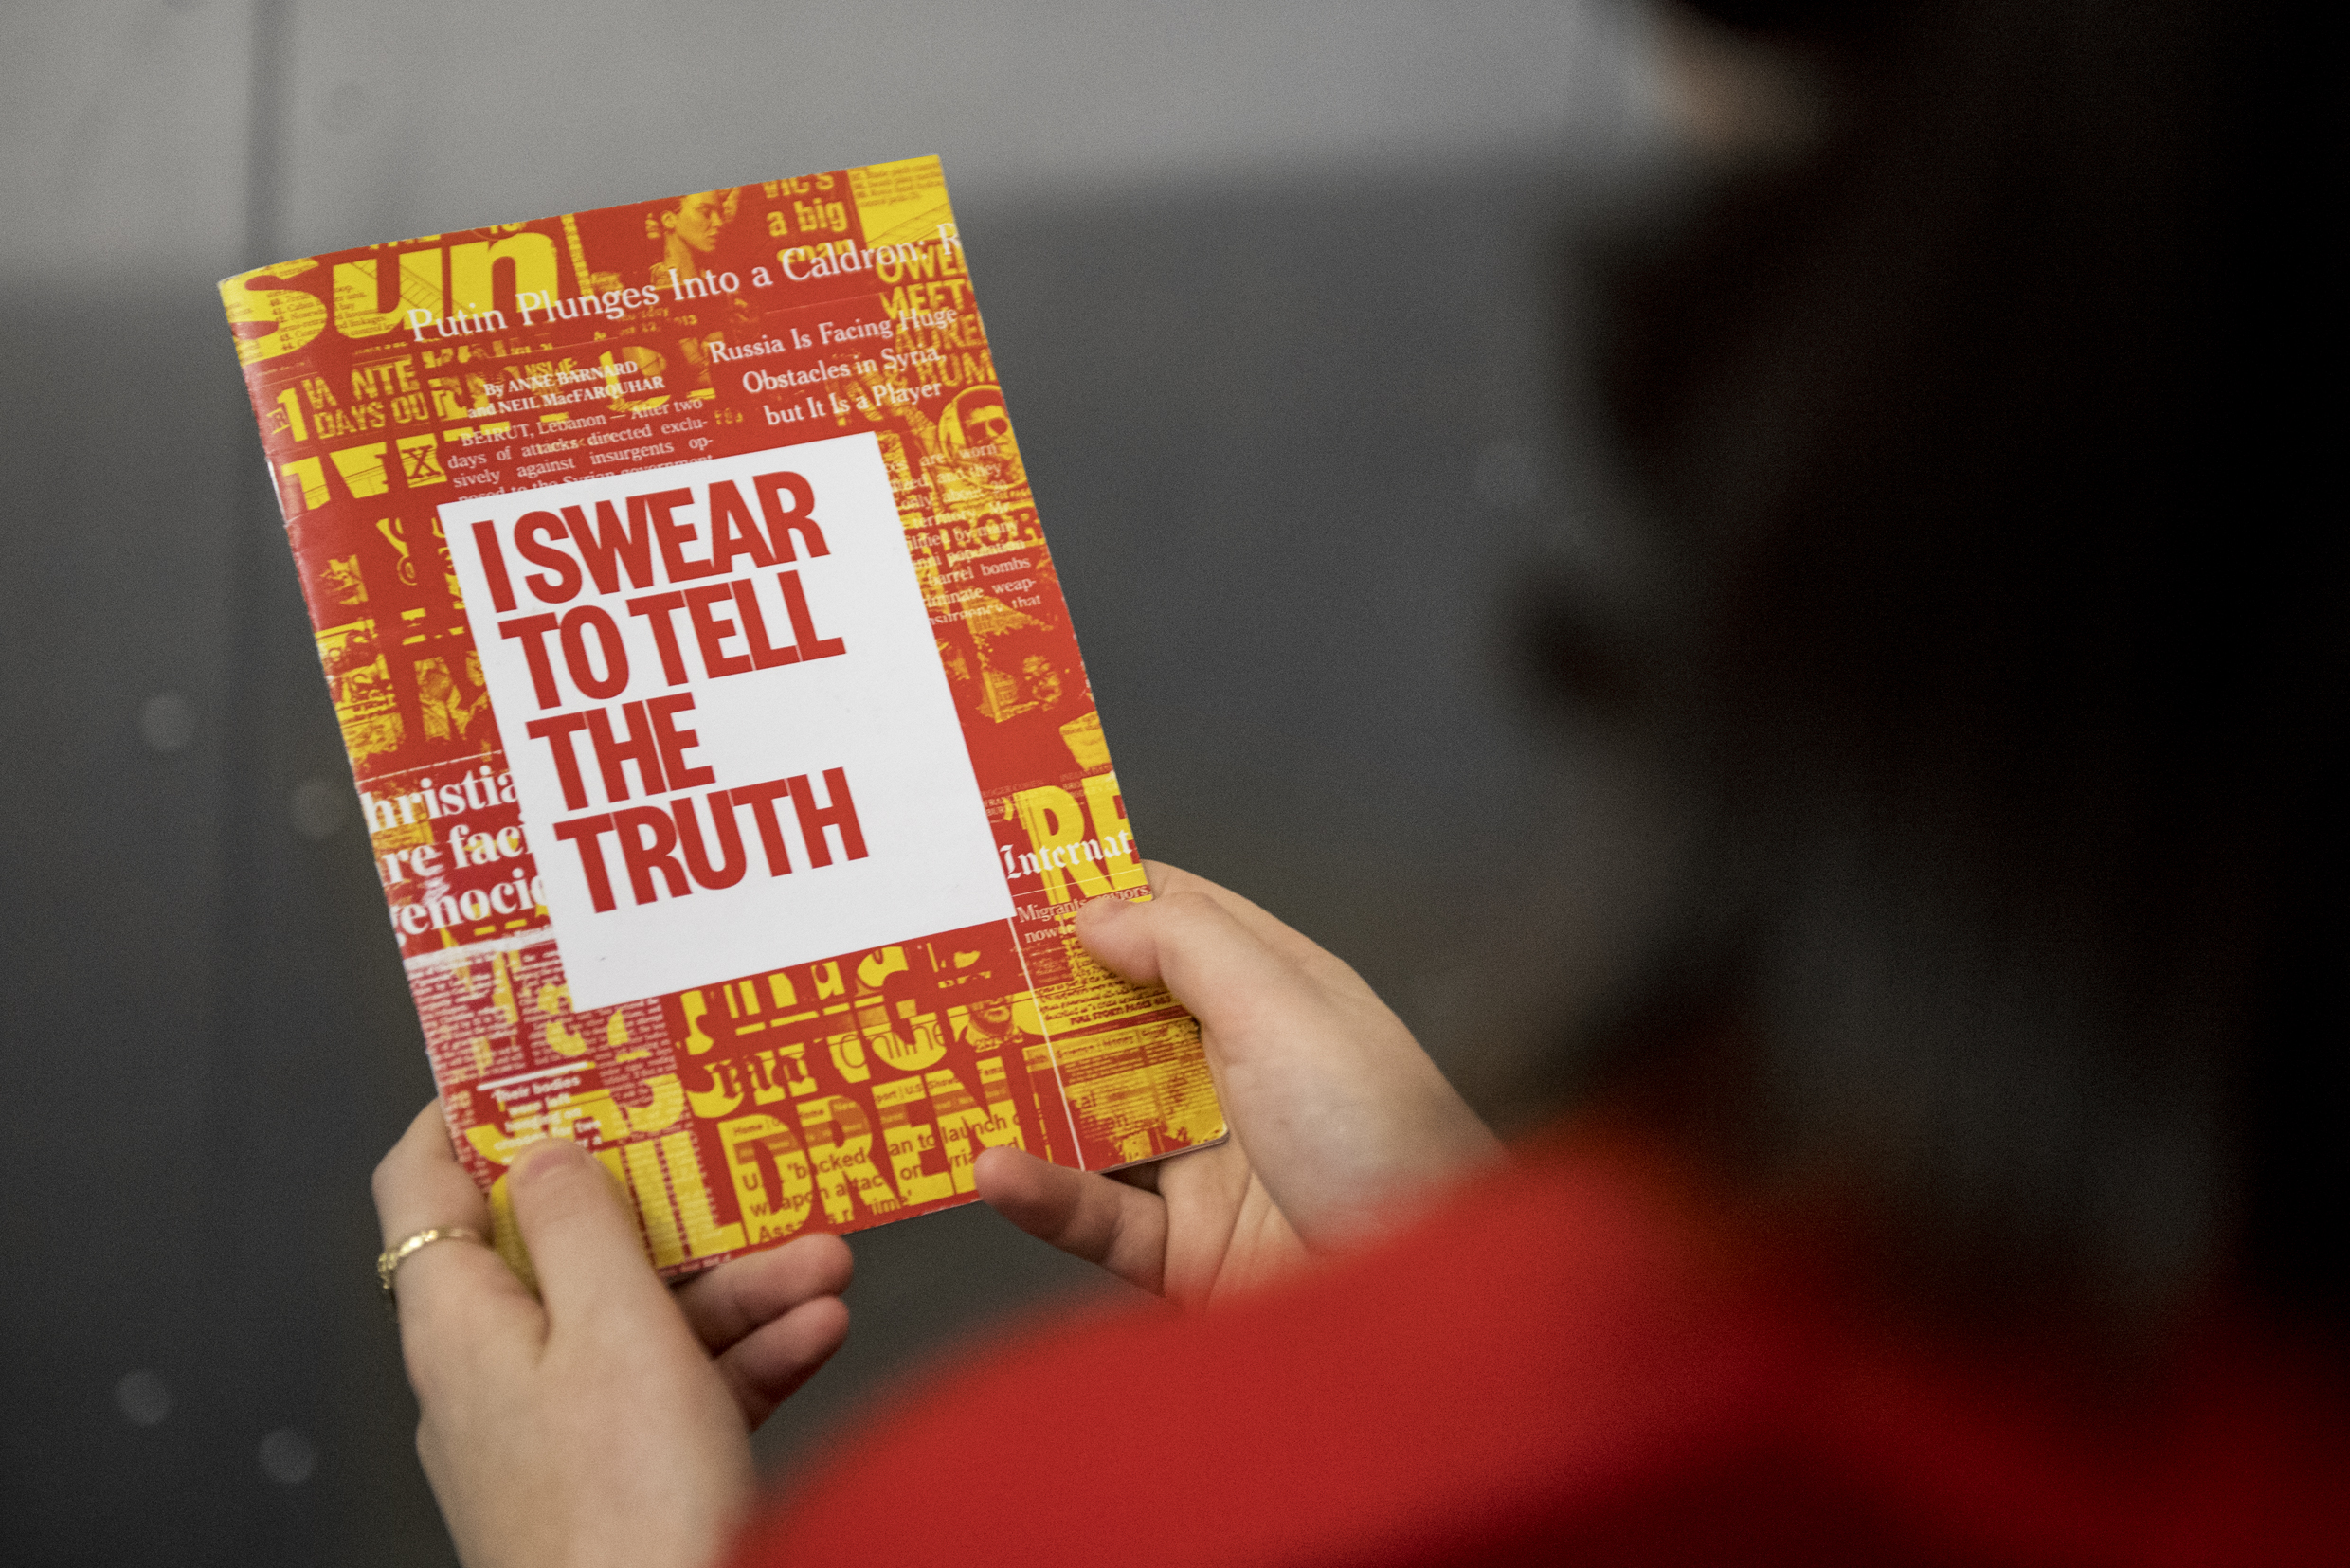 A visitor to IWM North taking part in the I Swear to Tell the Truth experience.